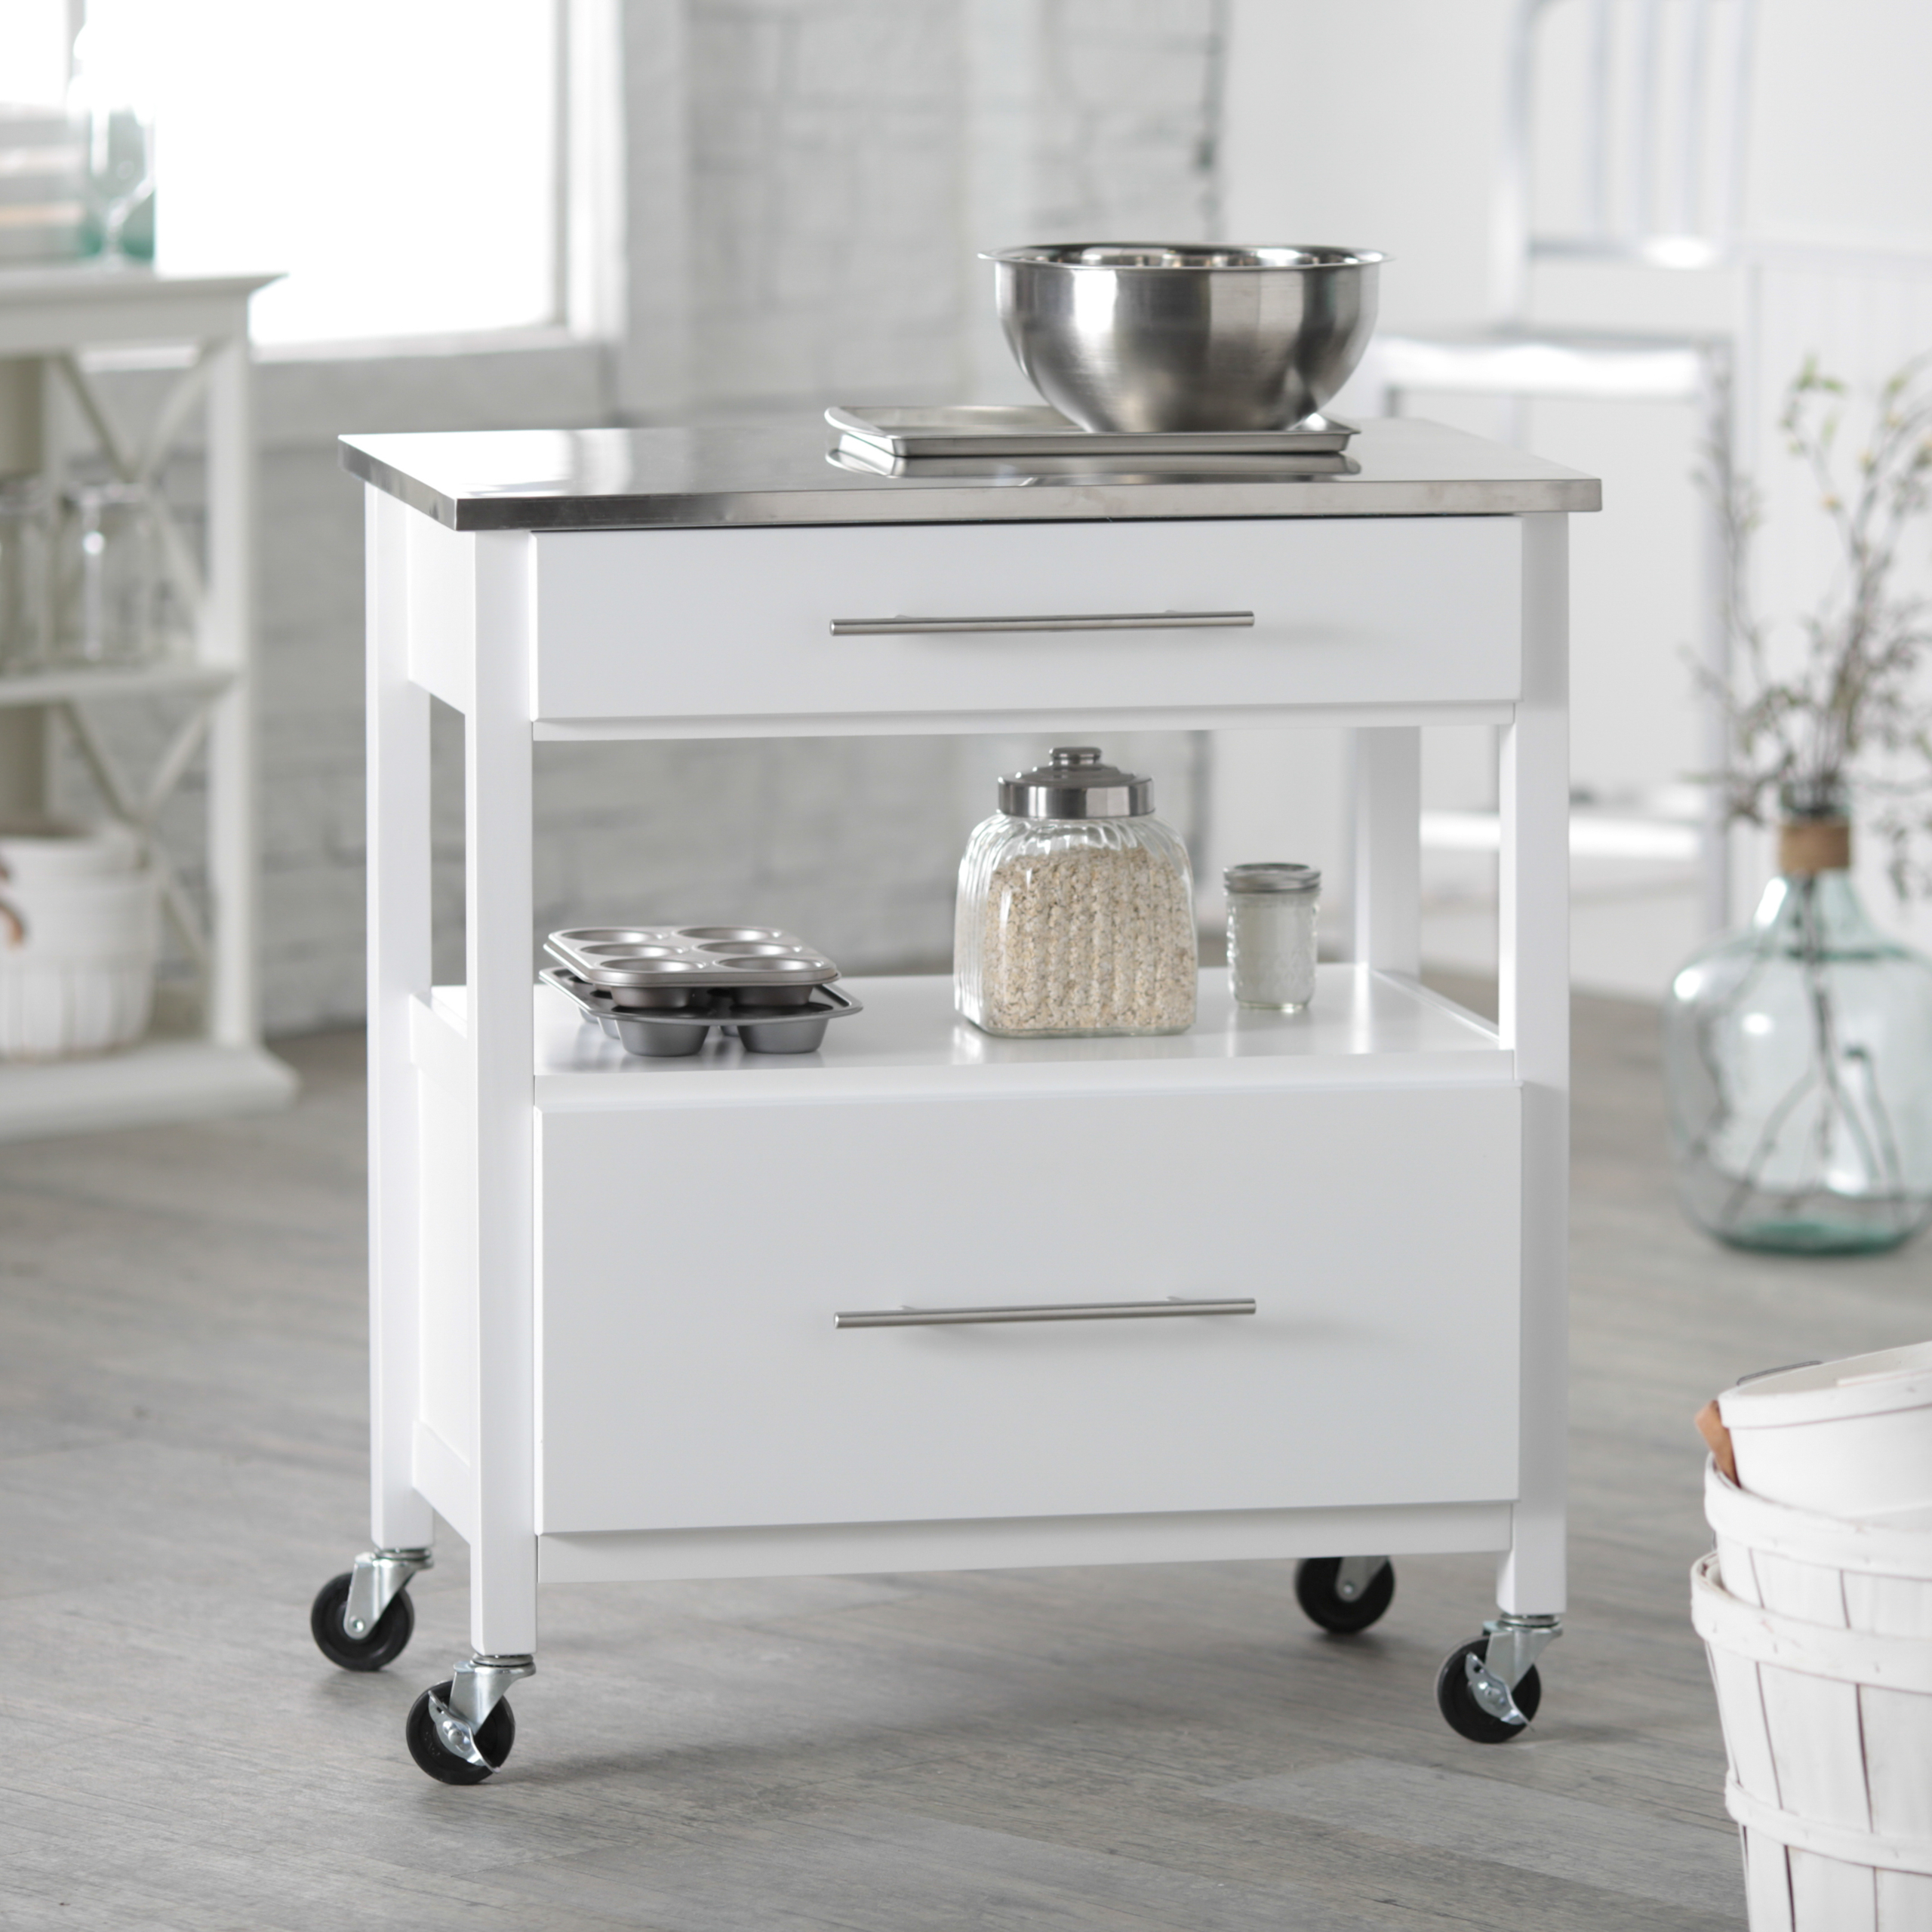 Gentil Kitchen Island With Stainless Steel Top 30